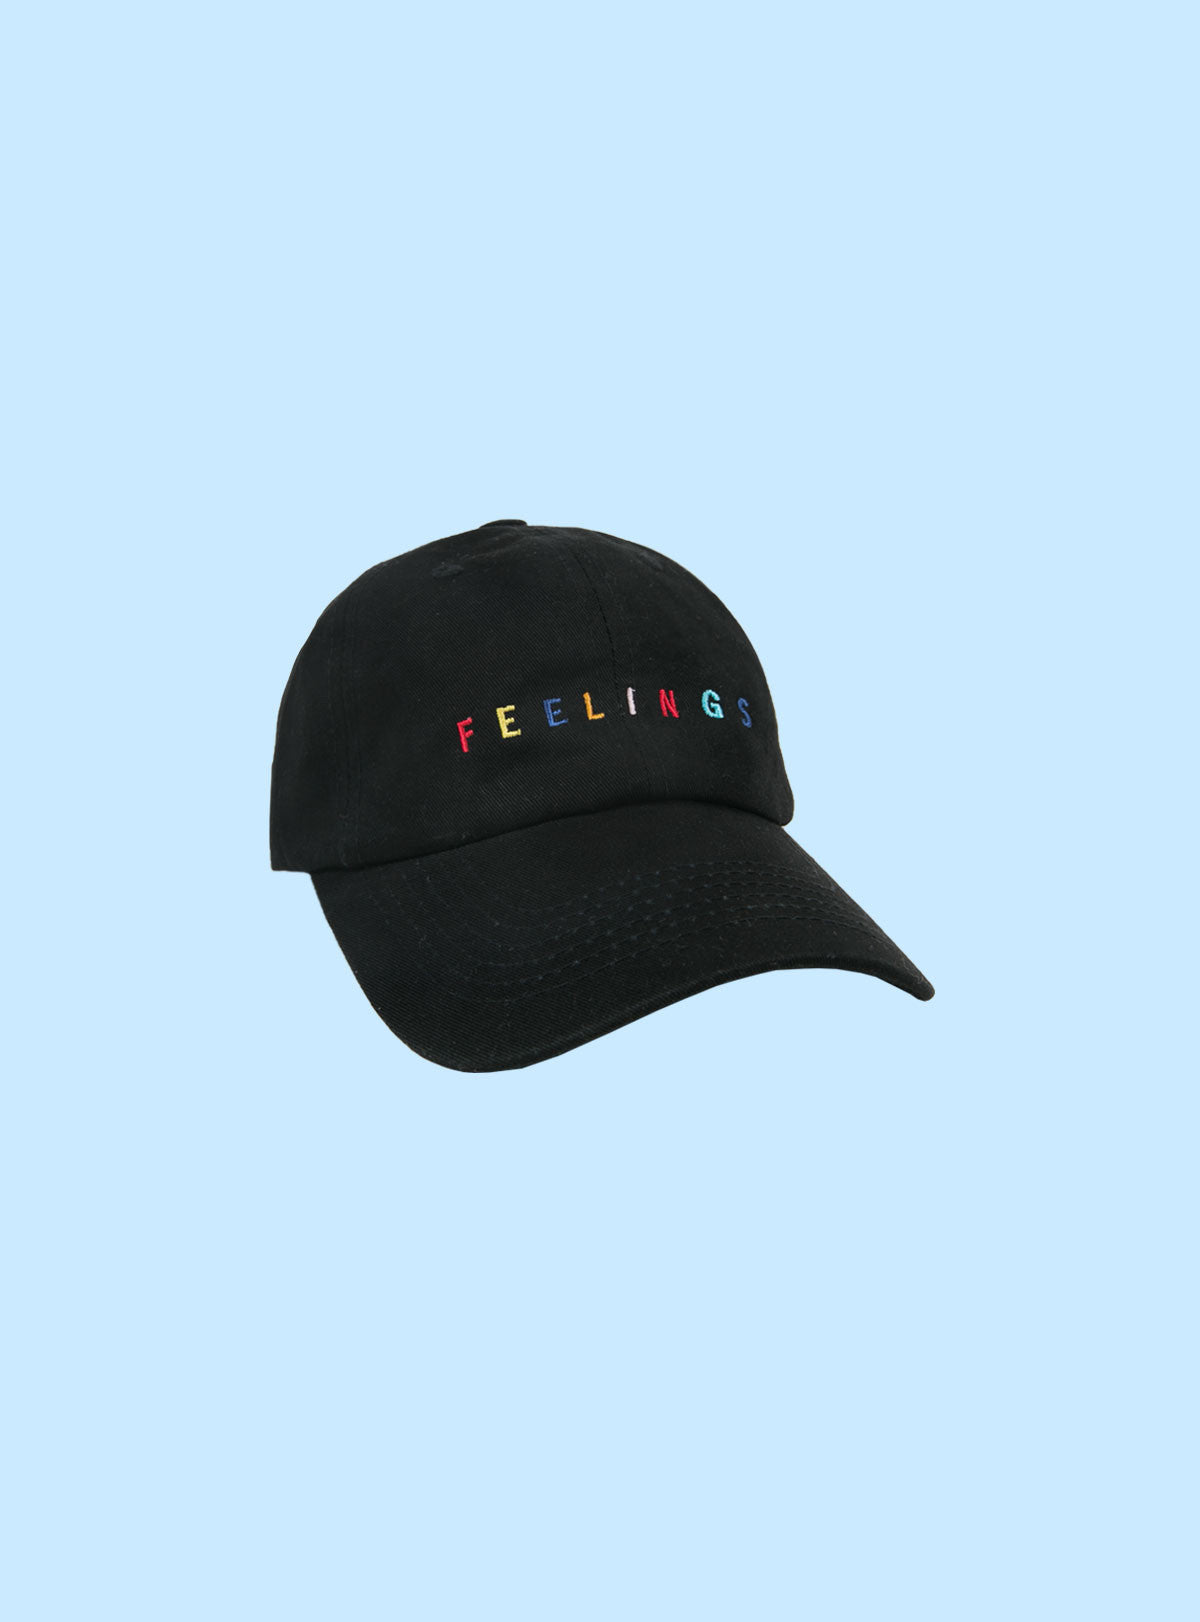 Feelings Cap